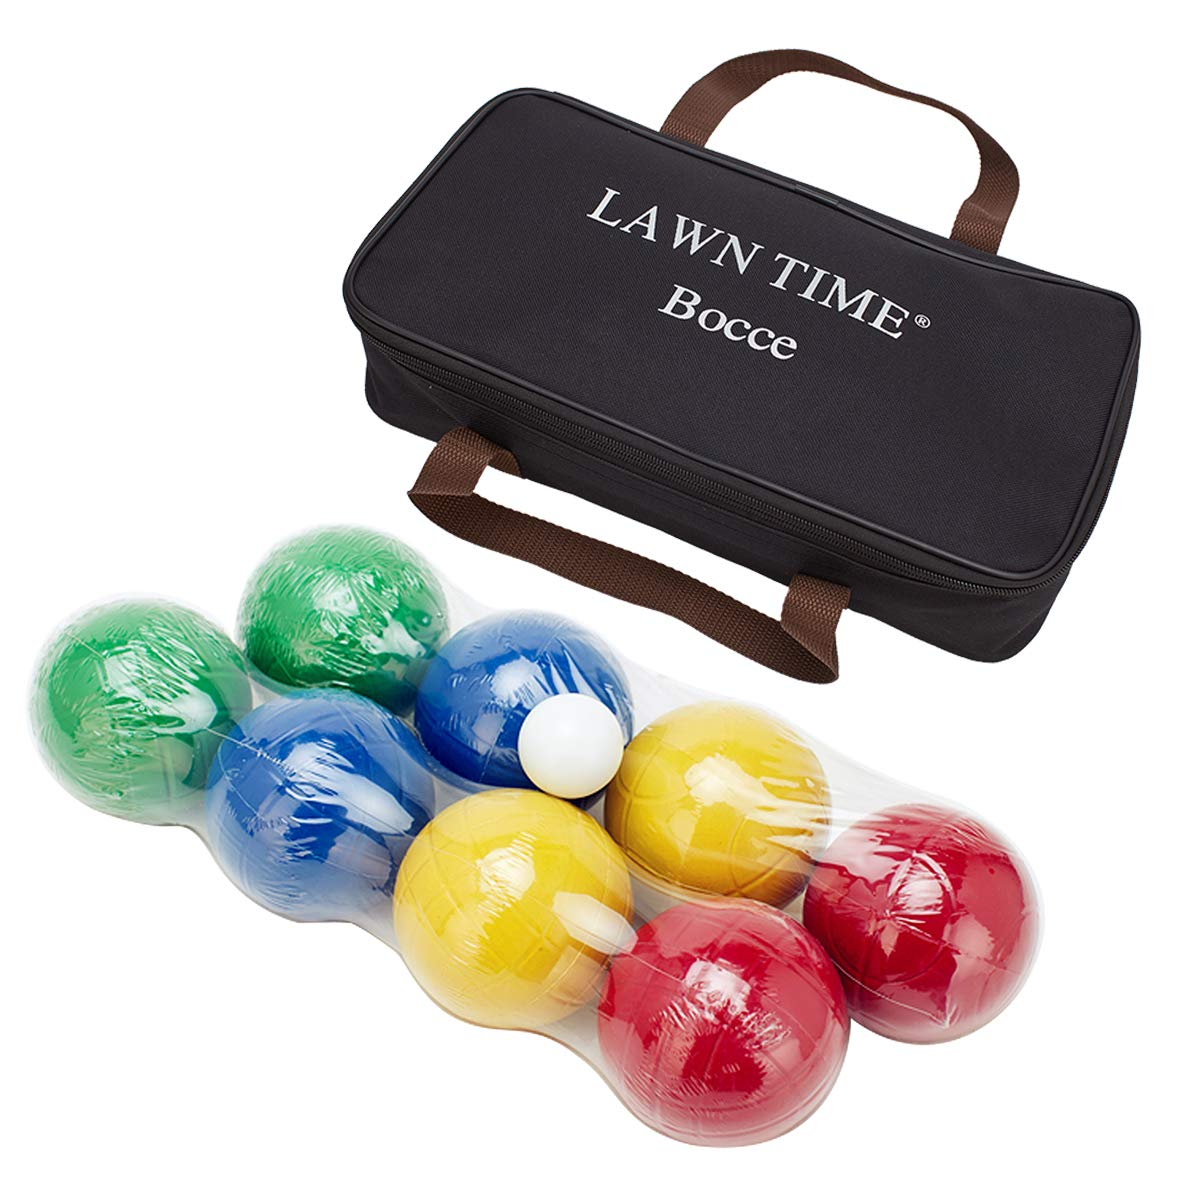 LAWN TIME 90mm Bocce Ball Set | Includes 8 Recreational Plastic Balls, 1 Pallino (Jack Ball) and 1 Nylon Zip-Up Carrying Case | Beach, Backyard or Outdoor Party Game - Family Fun for All Ages